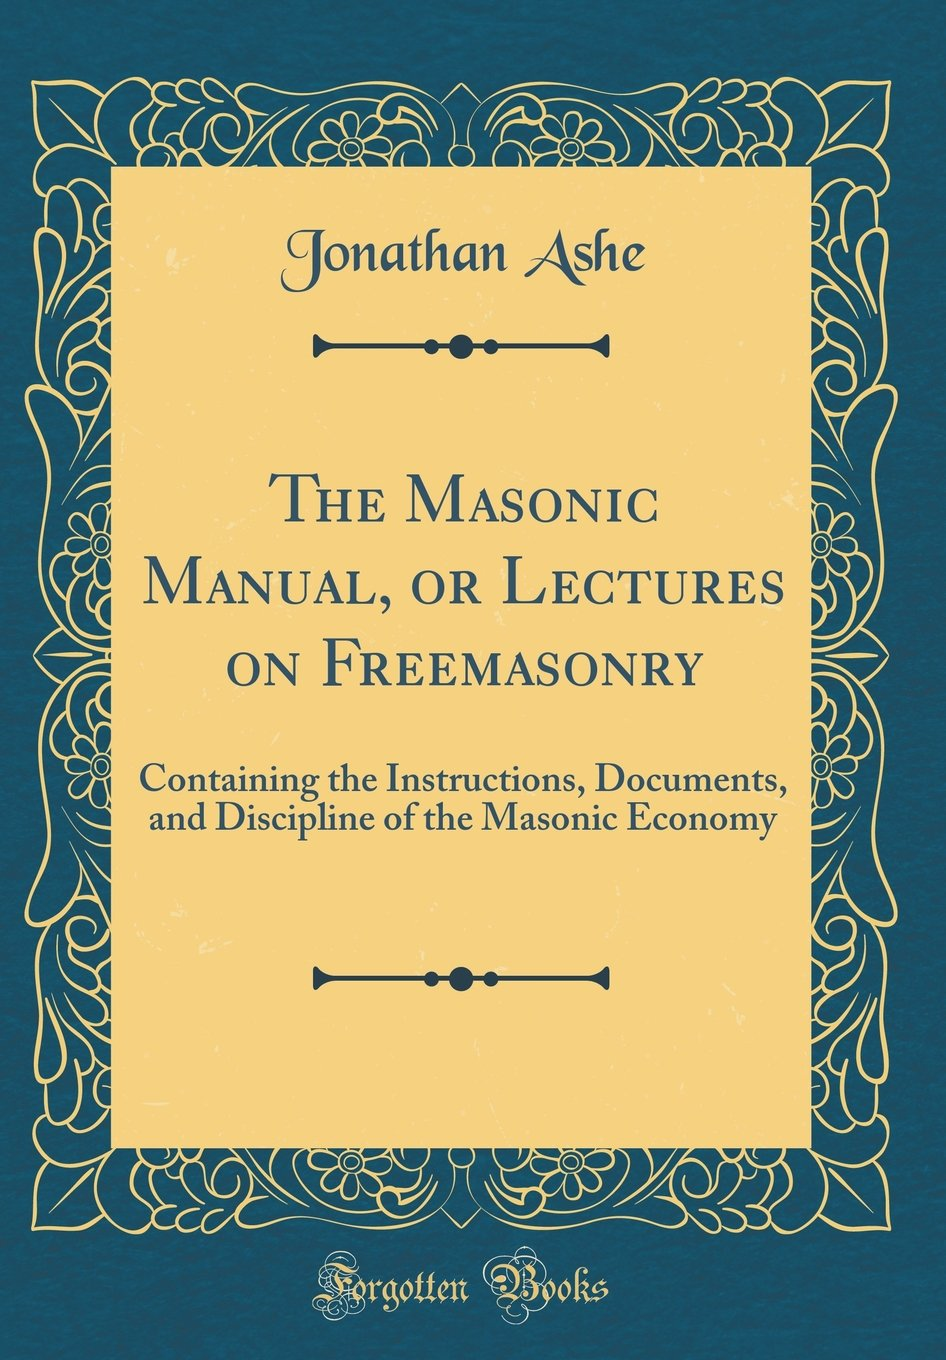 Download The Masonic Manual, or Lectures on Freemasonry: Containing the Instructions, Documents, and Discipline of the Masonic Economy (Classic Reprint) pdf epub